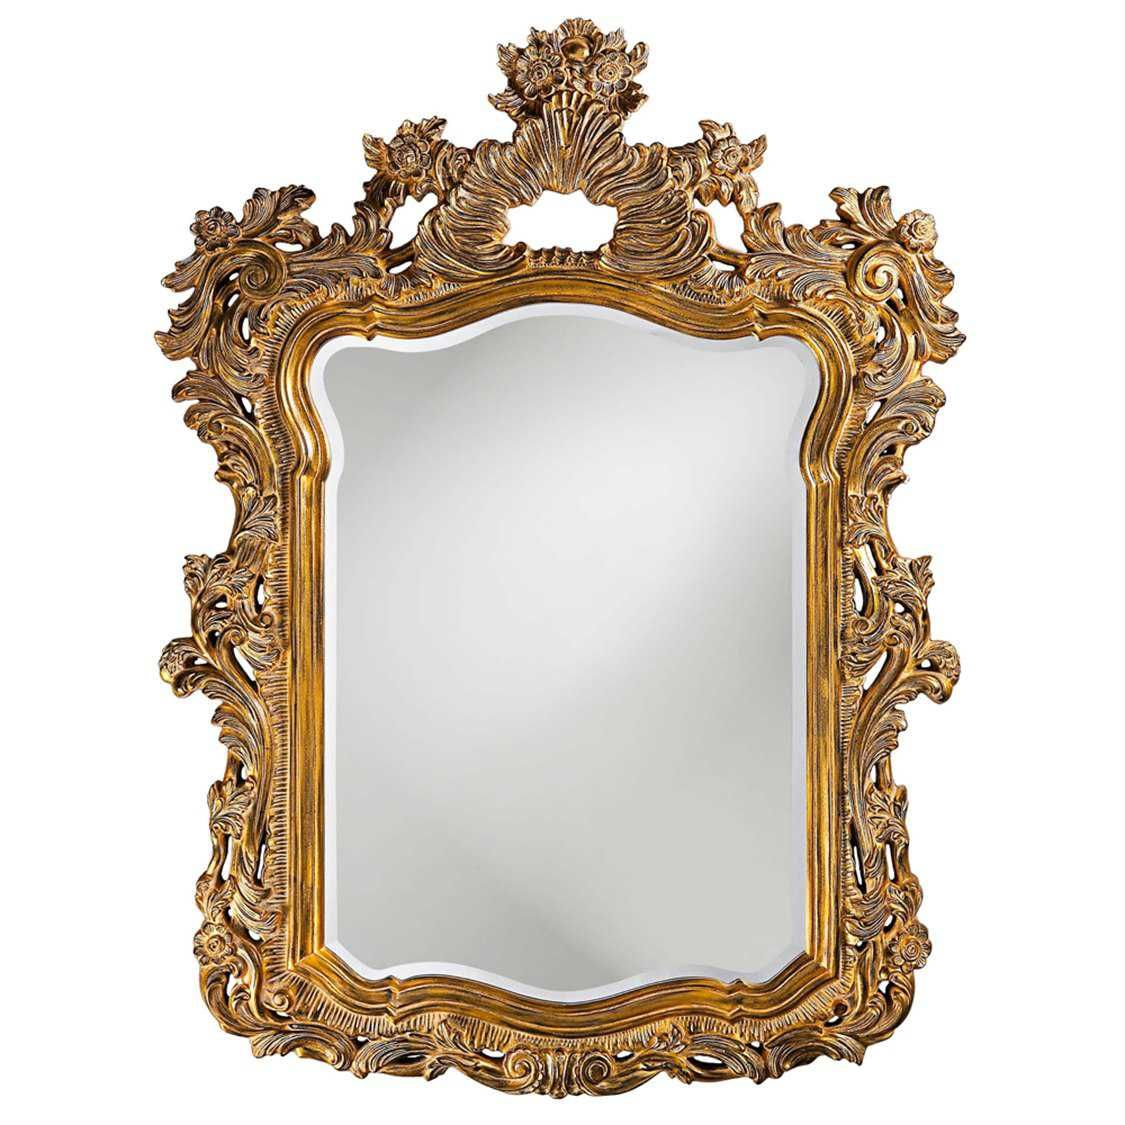 Howard Elliott Turner 42 X 56 Antique Gold Wall Mirror Ornate Mirror Framed Mirror Wall Gold Mirror Wall